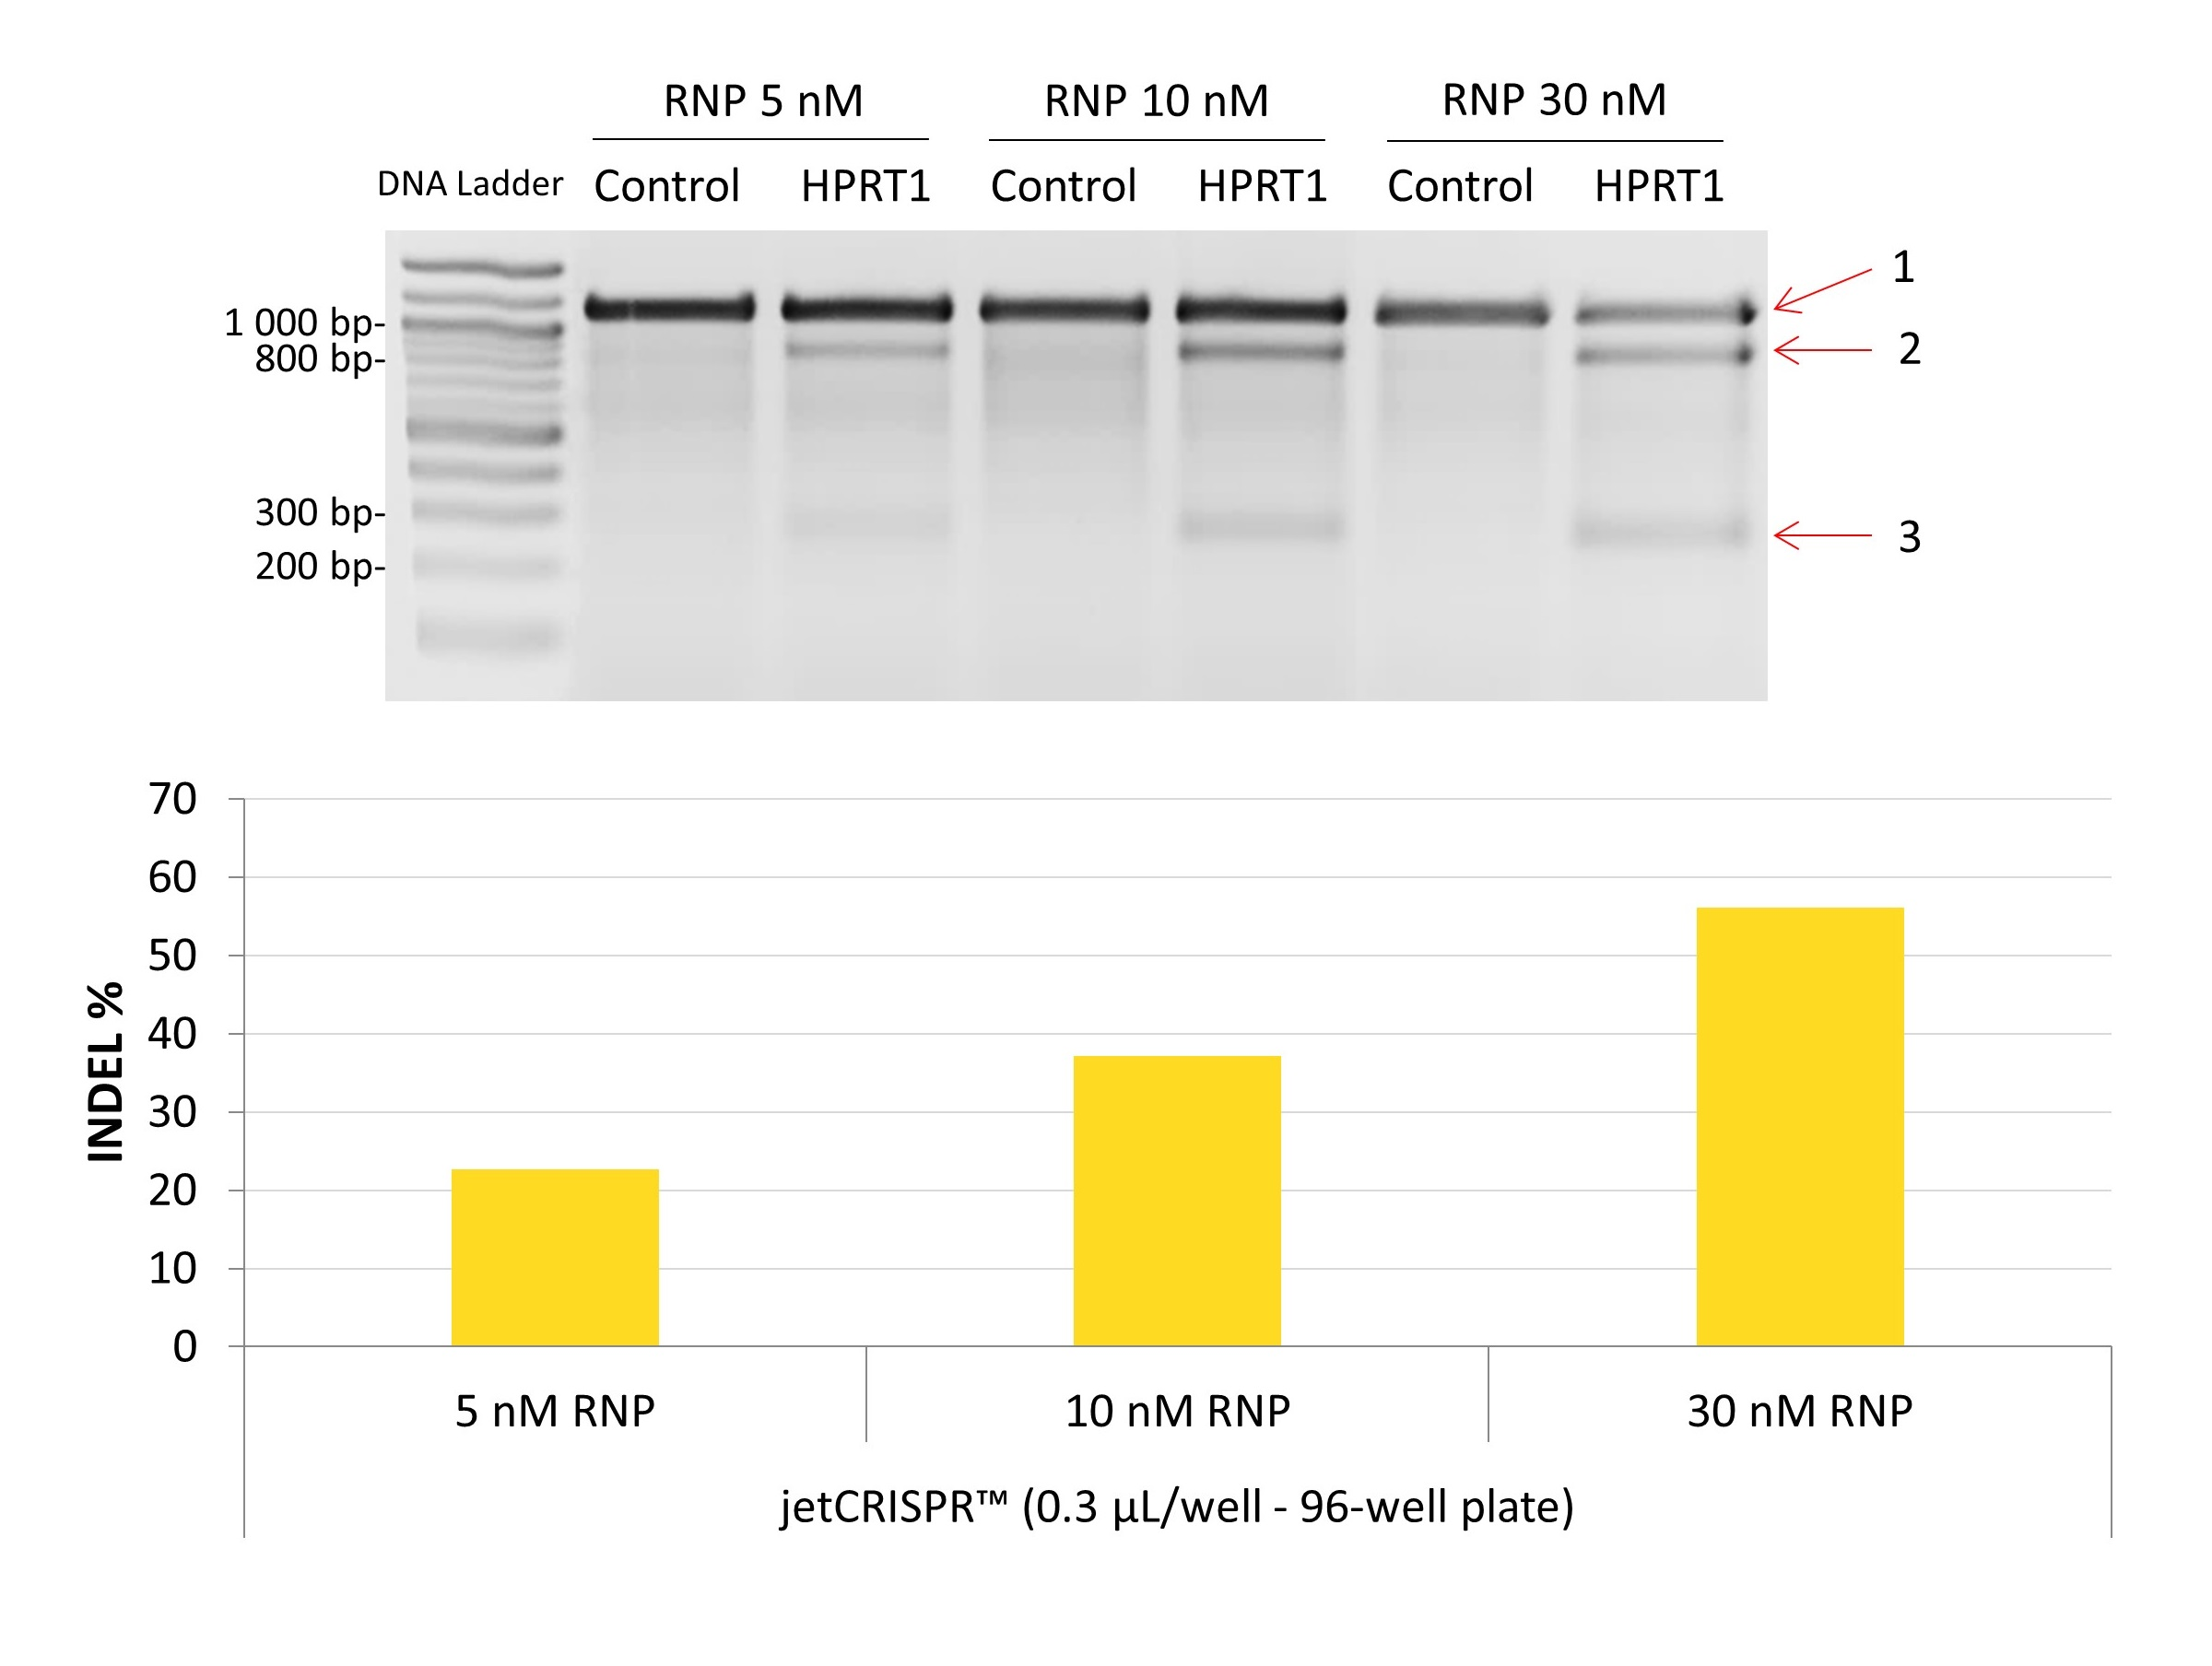 jetCRISPR - Genome editing efficiency